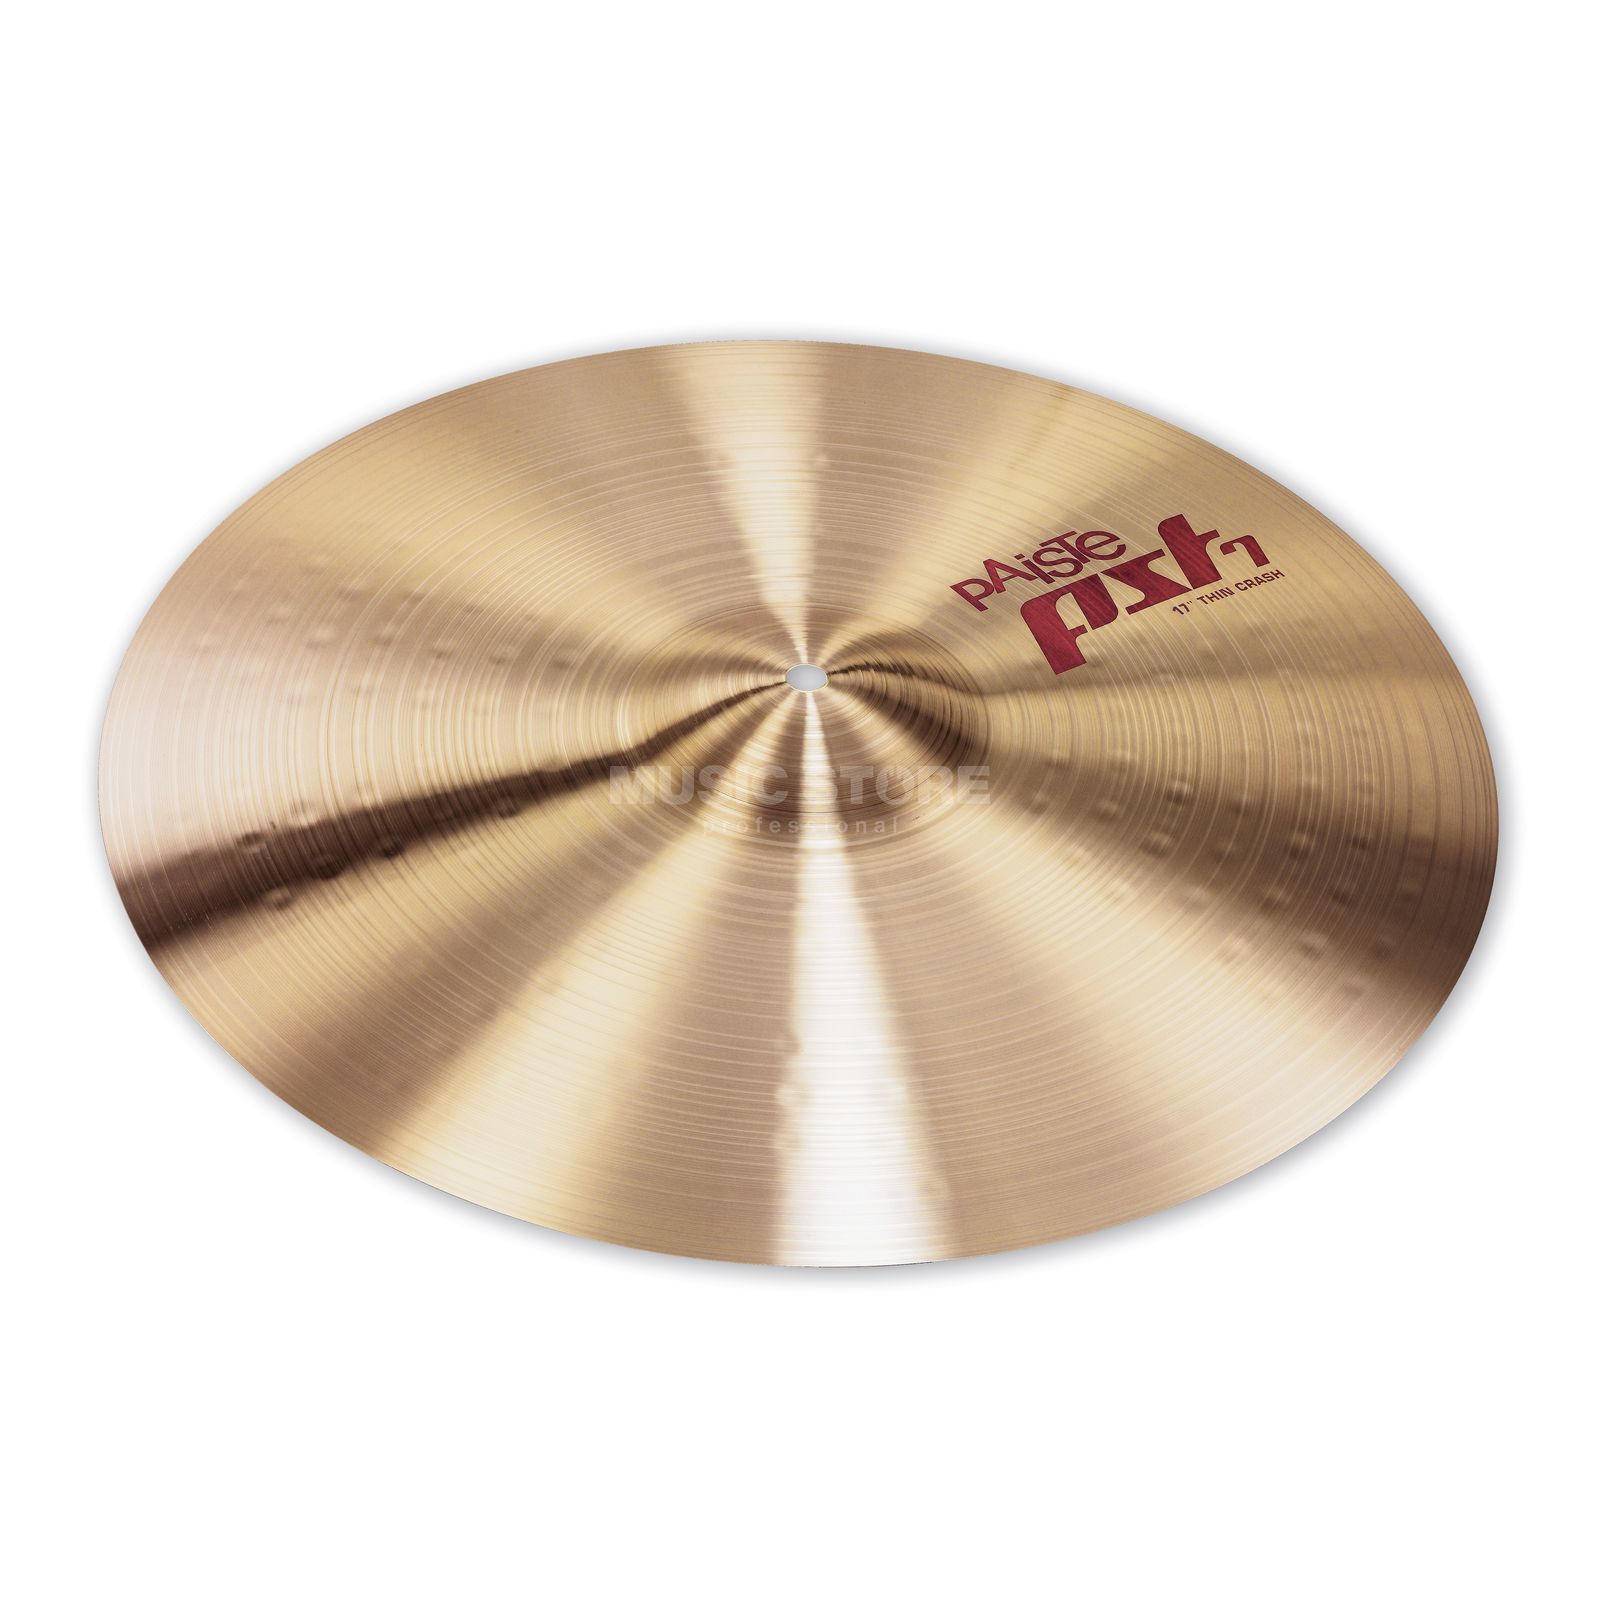 "Paiste PST7 Thin Crash 17"" Produktbild"